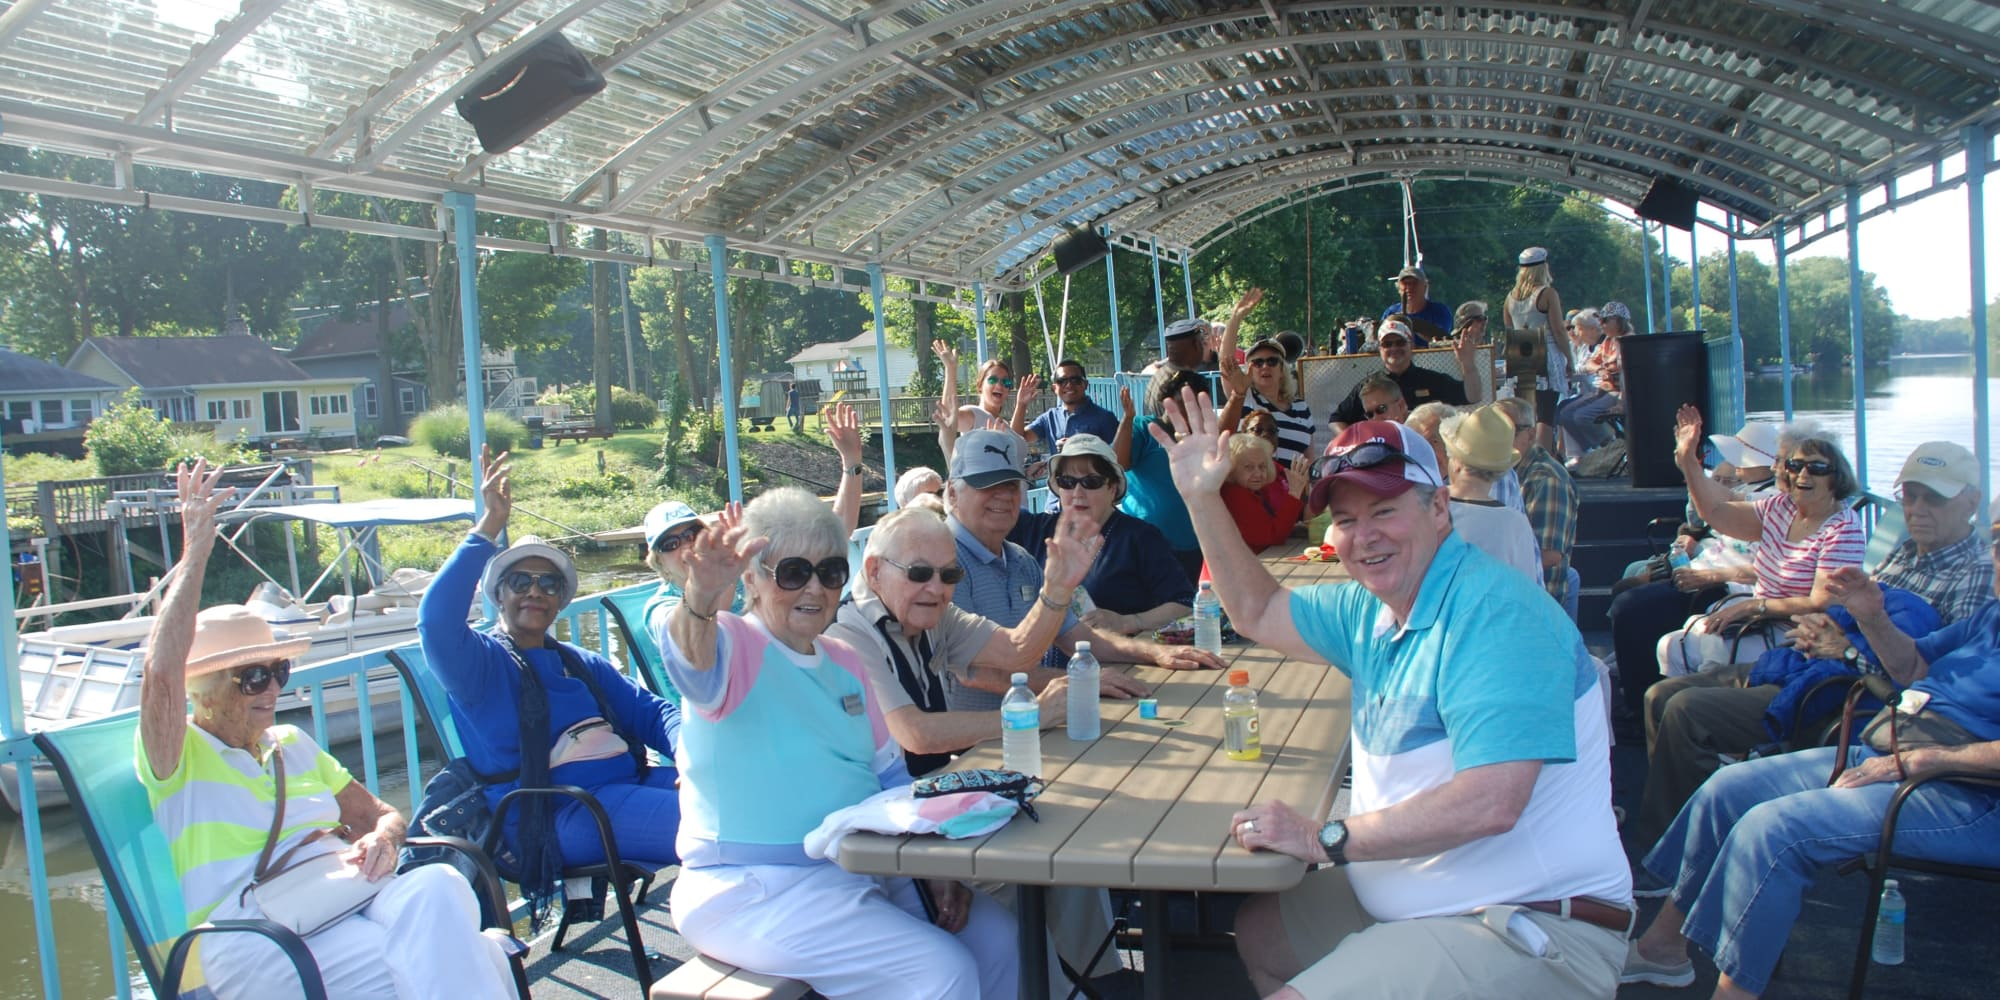 Residents from Ashton Gardens Gracious Retirement Living in Portland, Maine, on a boat ride